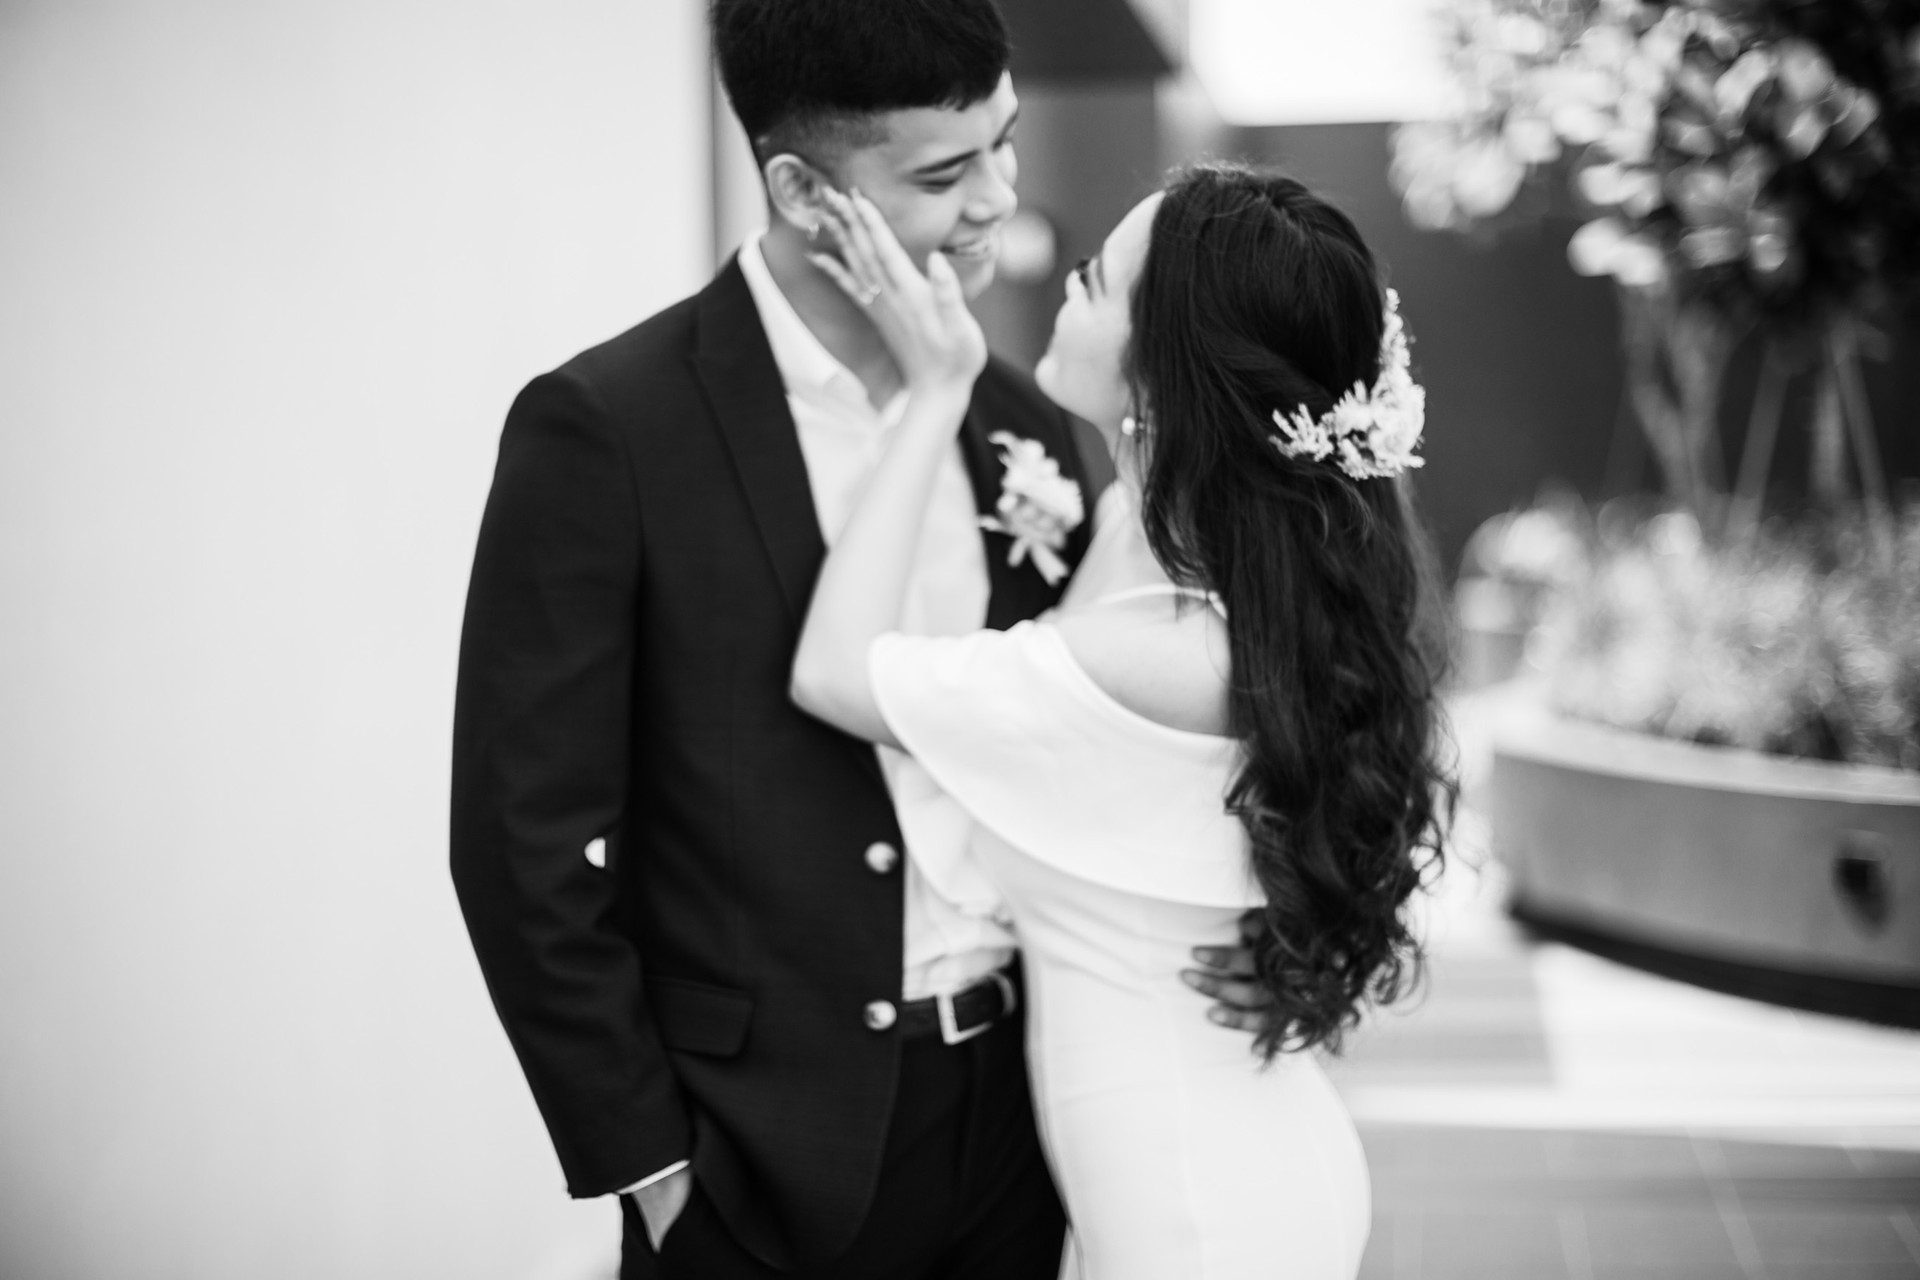 boonheng and jessica-56.jpg